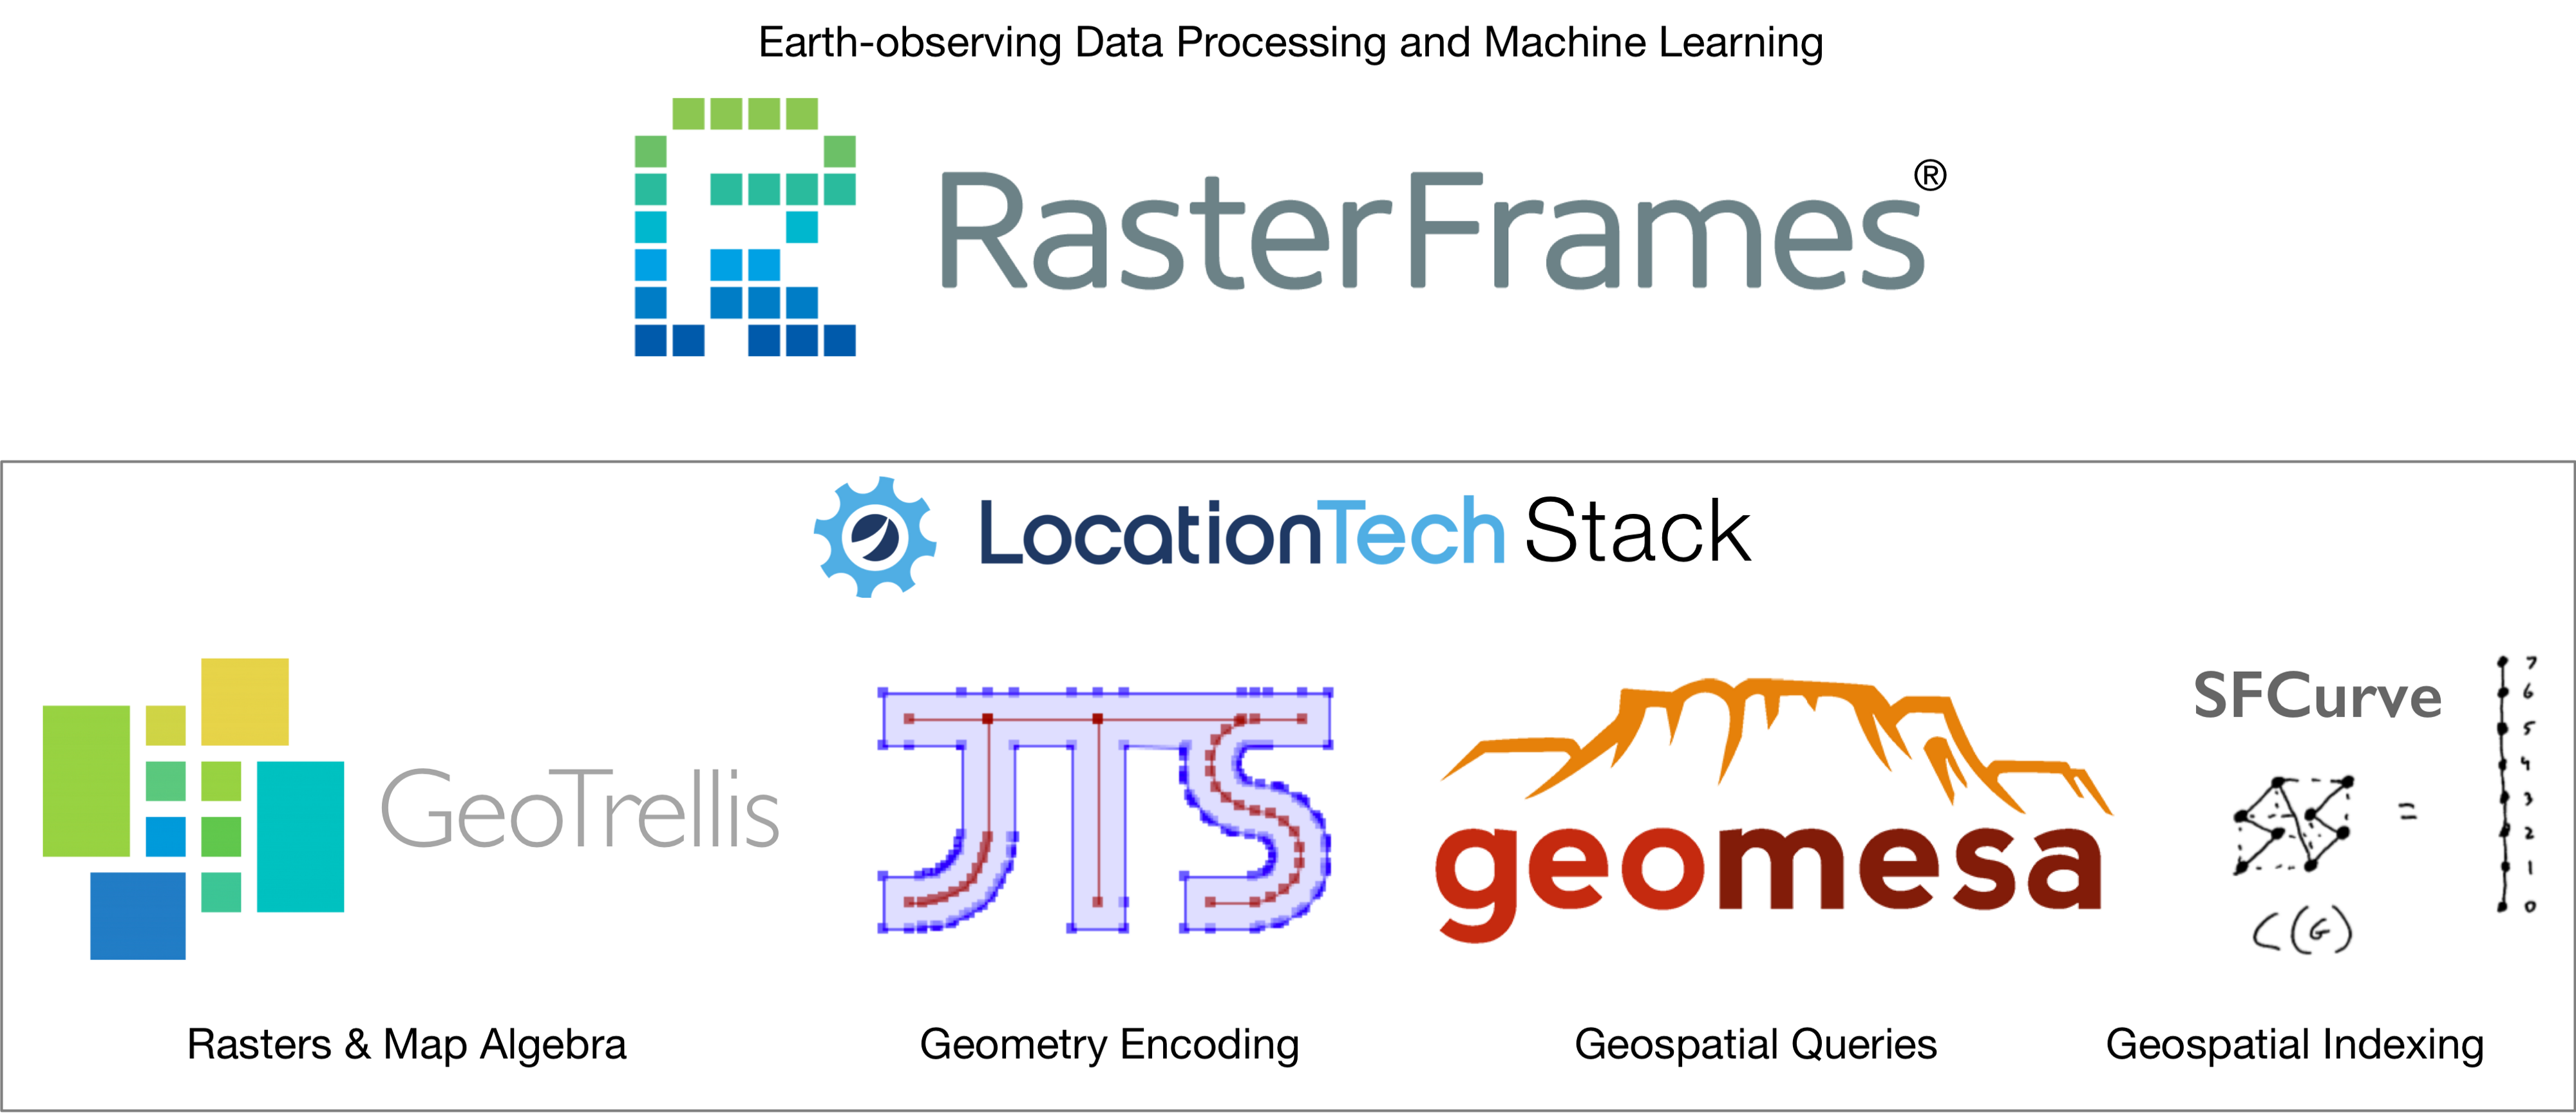 RasterFrames logo sequence of supporting platforms and how they relate to one another.